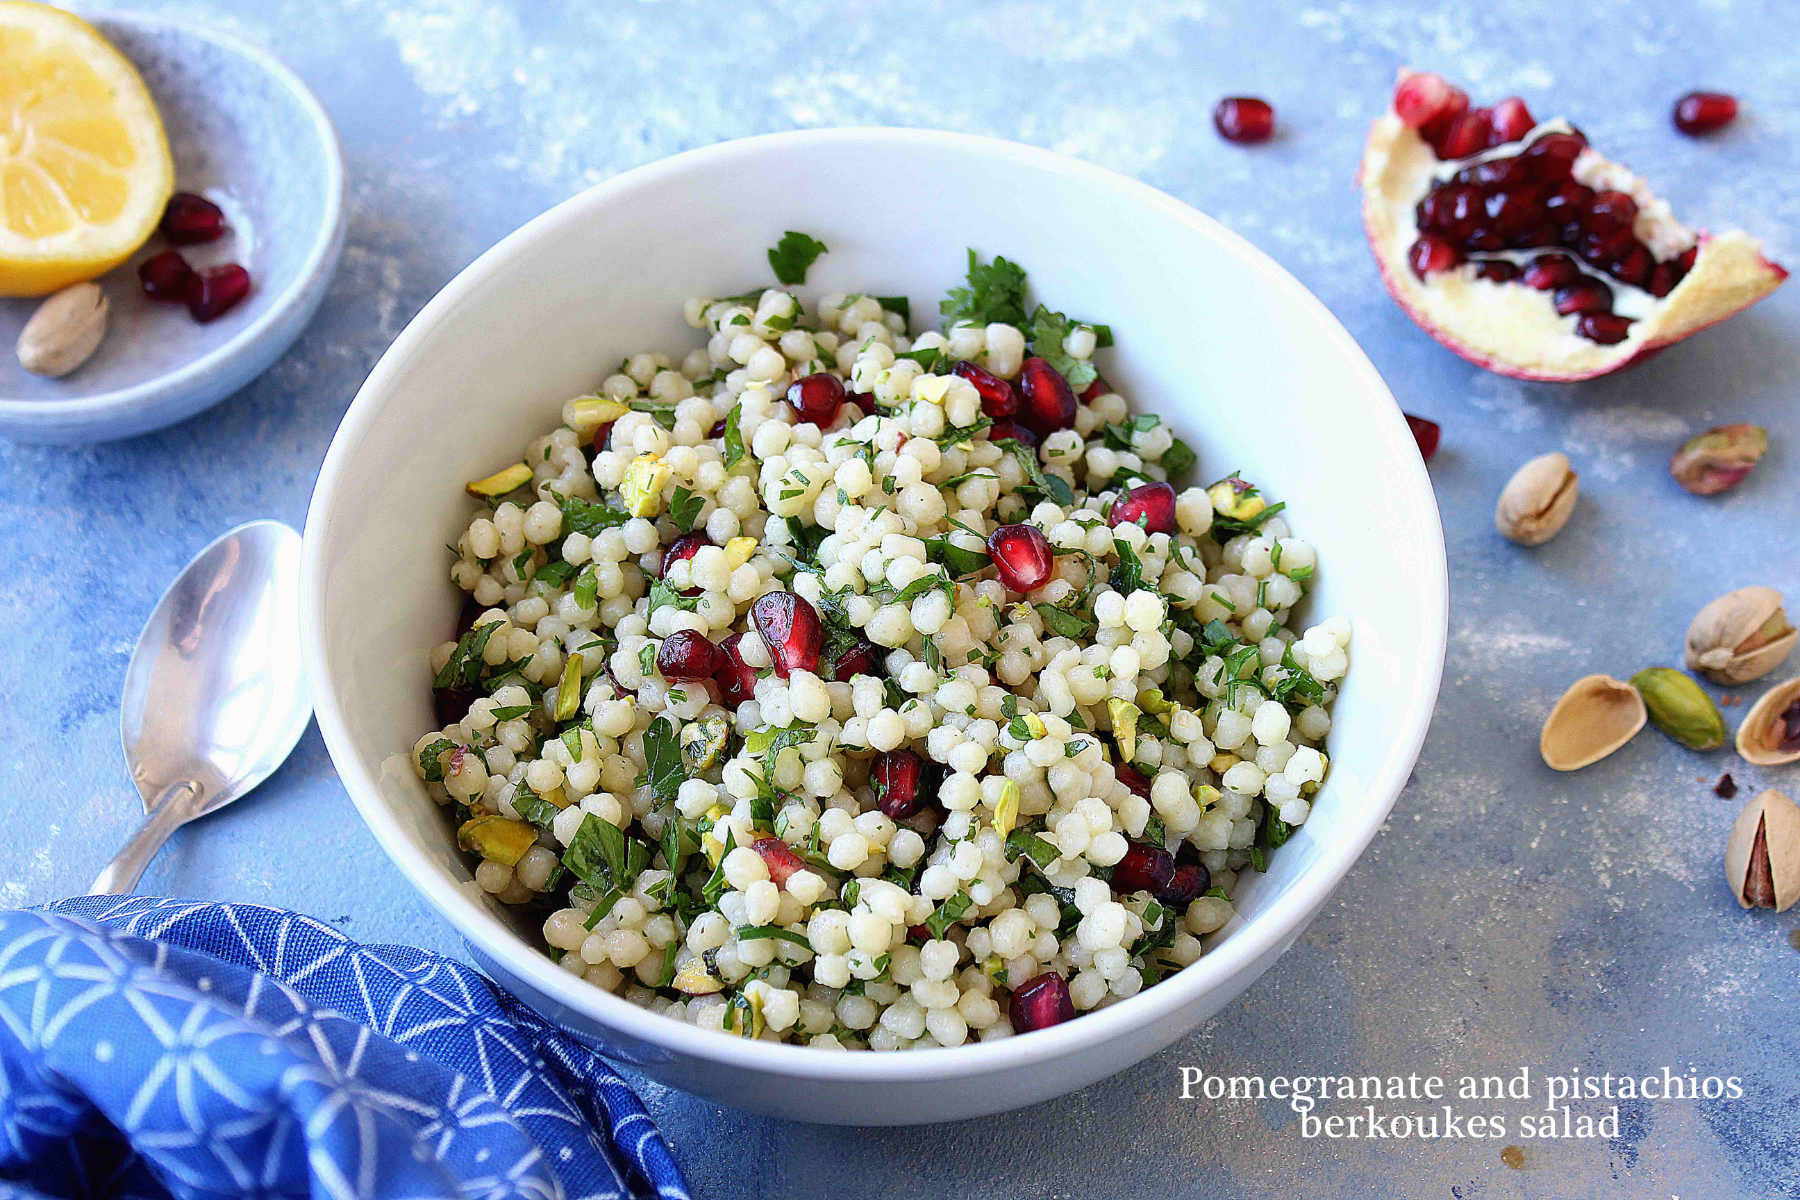 Pomegranate and pistachios pearl pasta salad